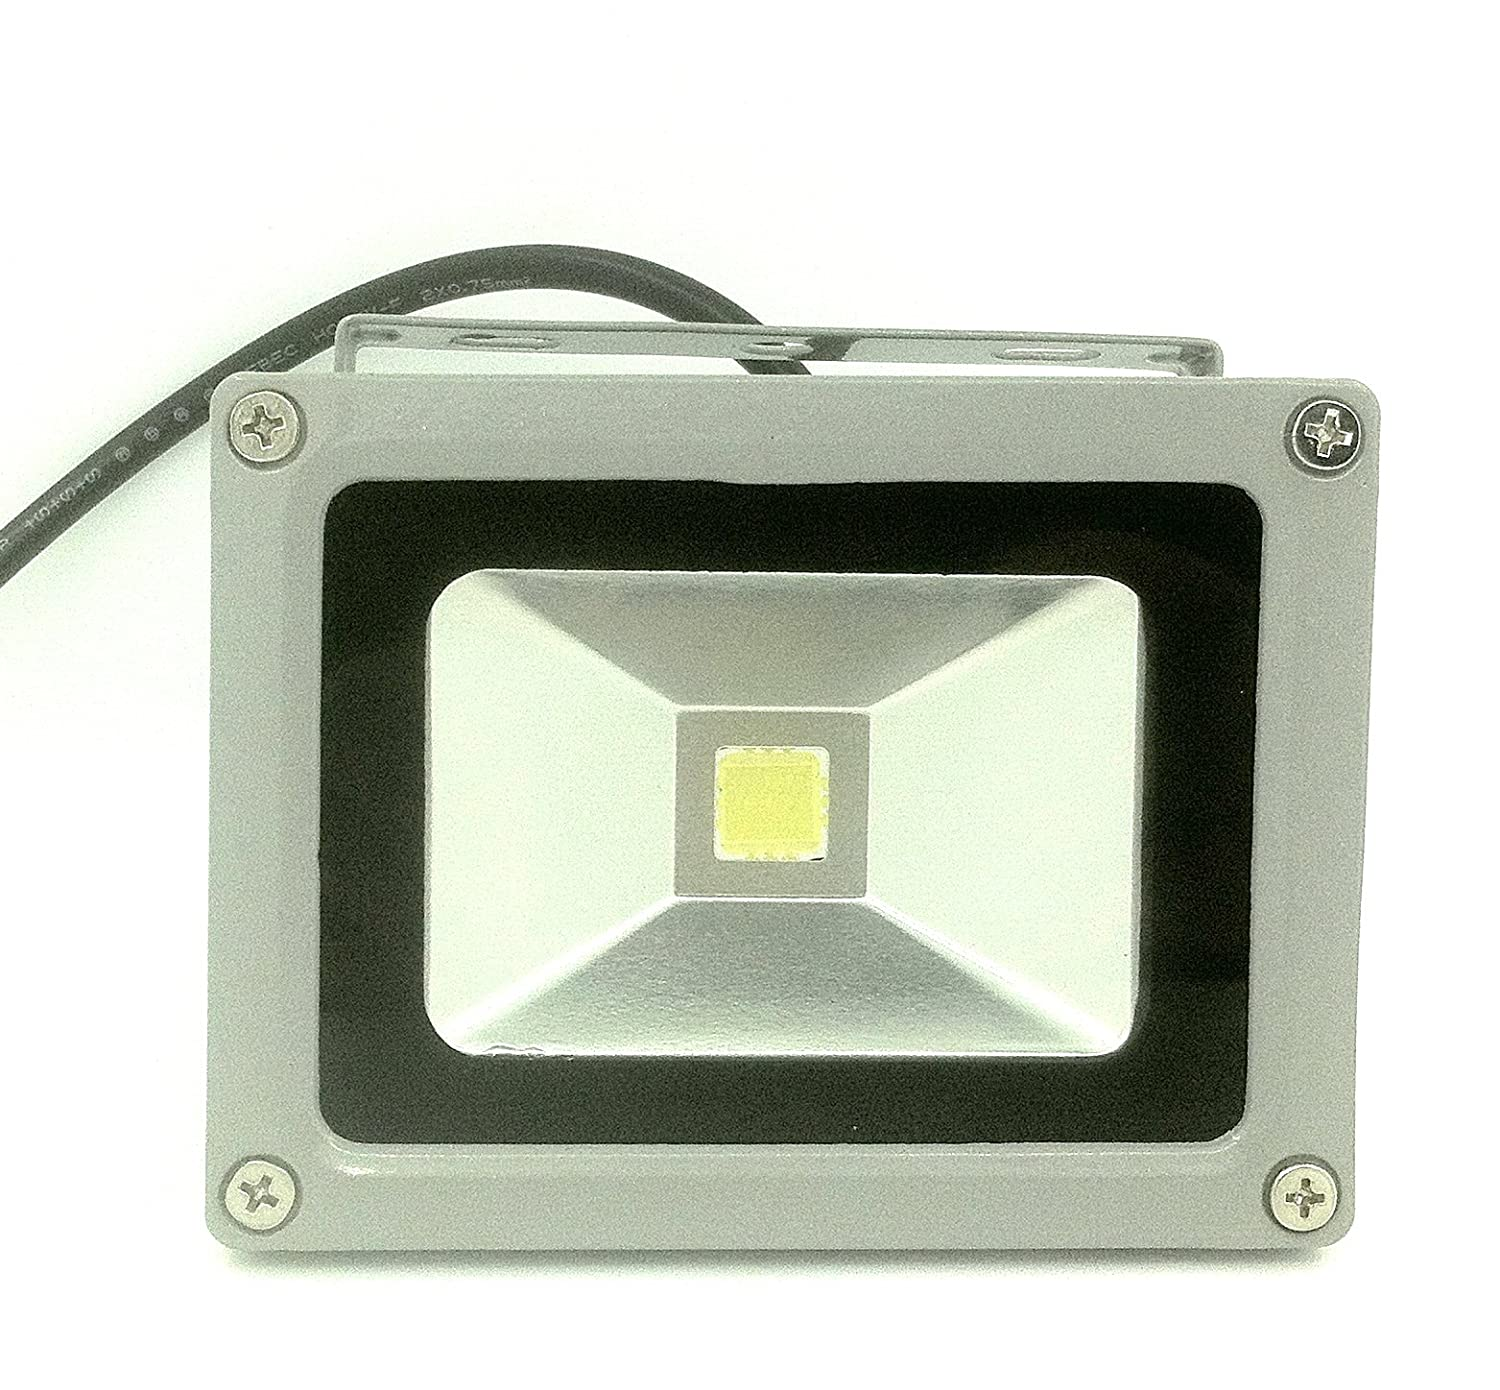 10w led flood light wiring 10w image wiring diagram glw 10w 12v ac or dc warm white led flood light high power on 10w led